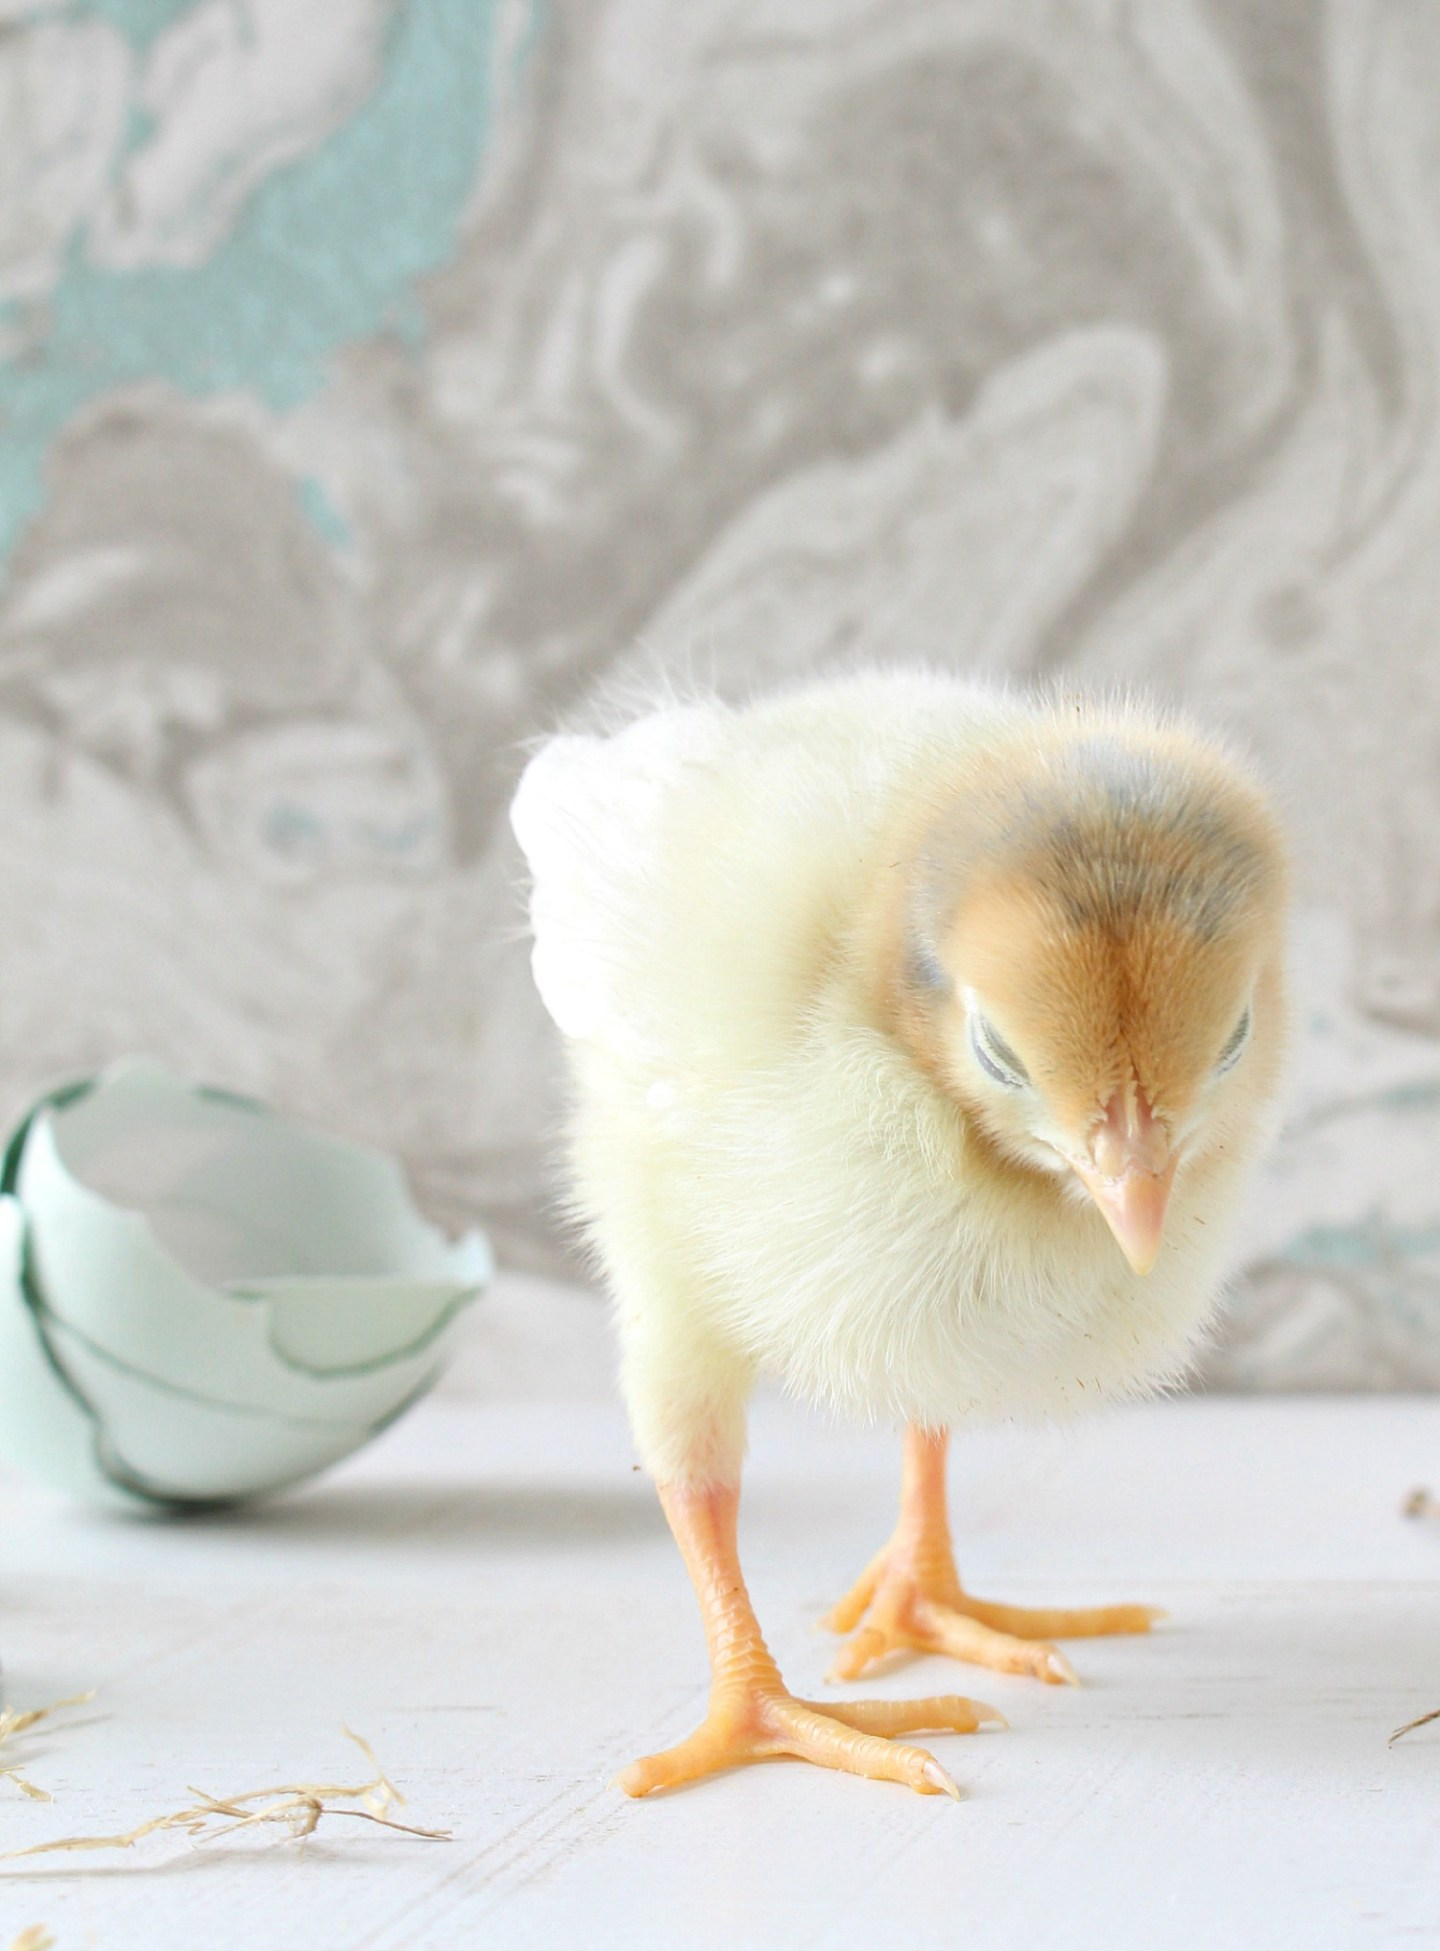 Sweet Yellow Chick Hatched Spring 2020